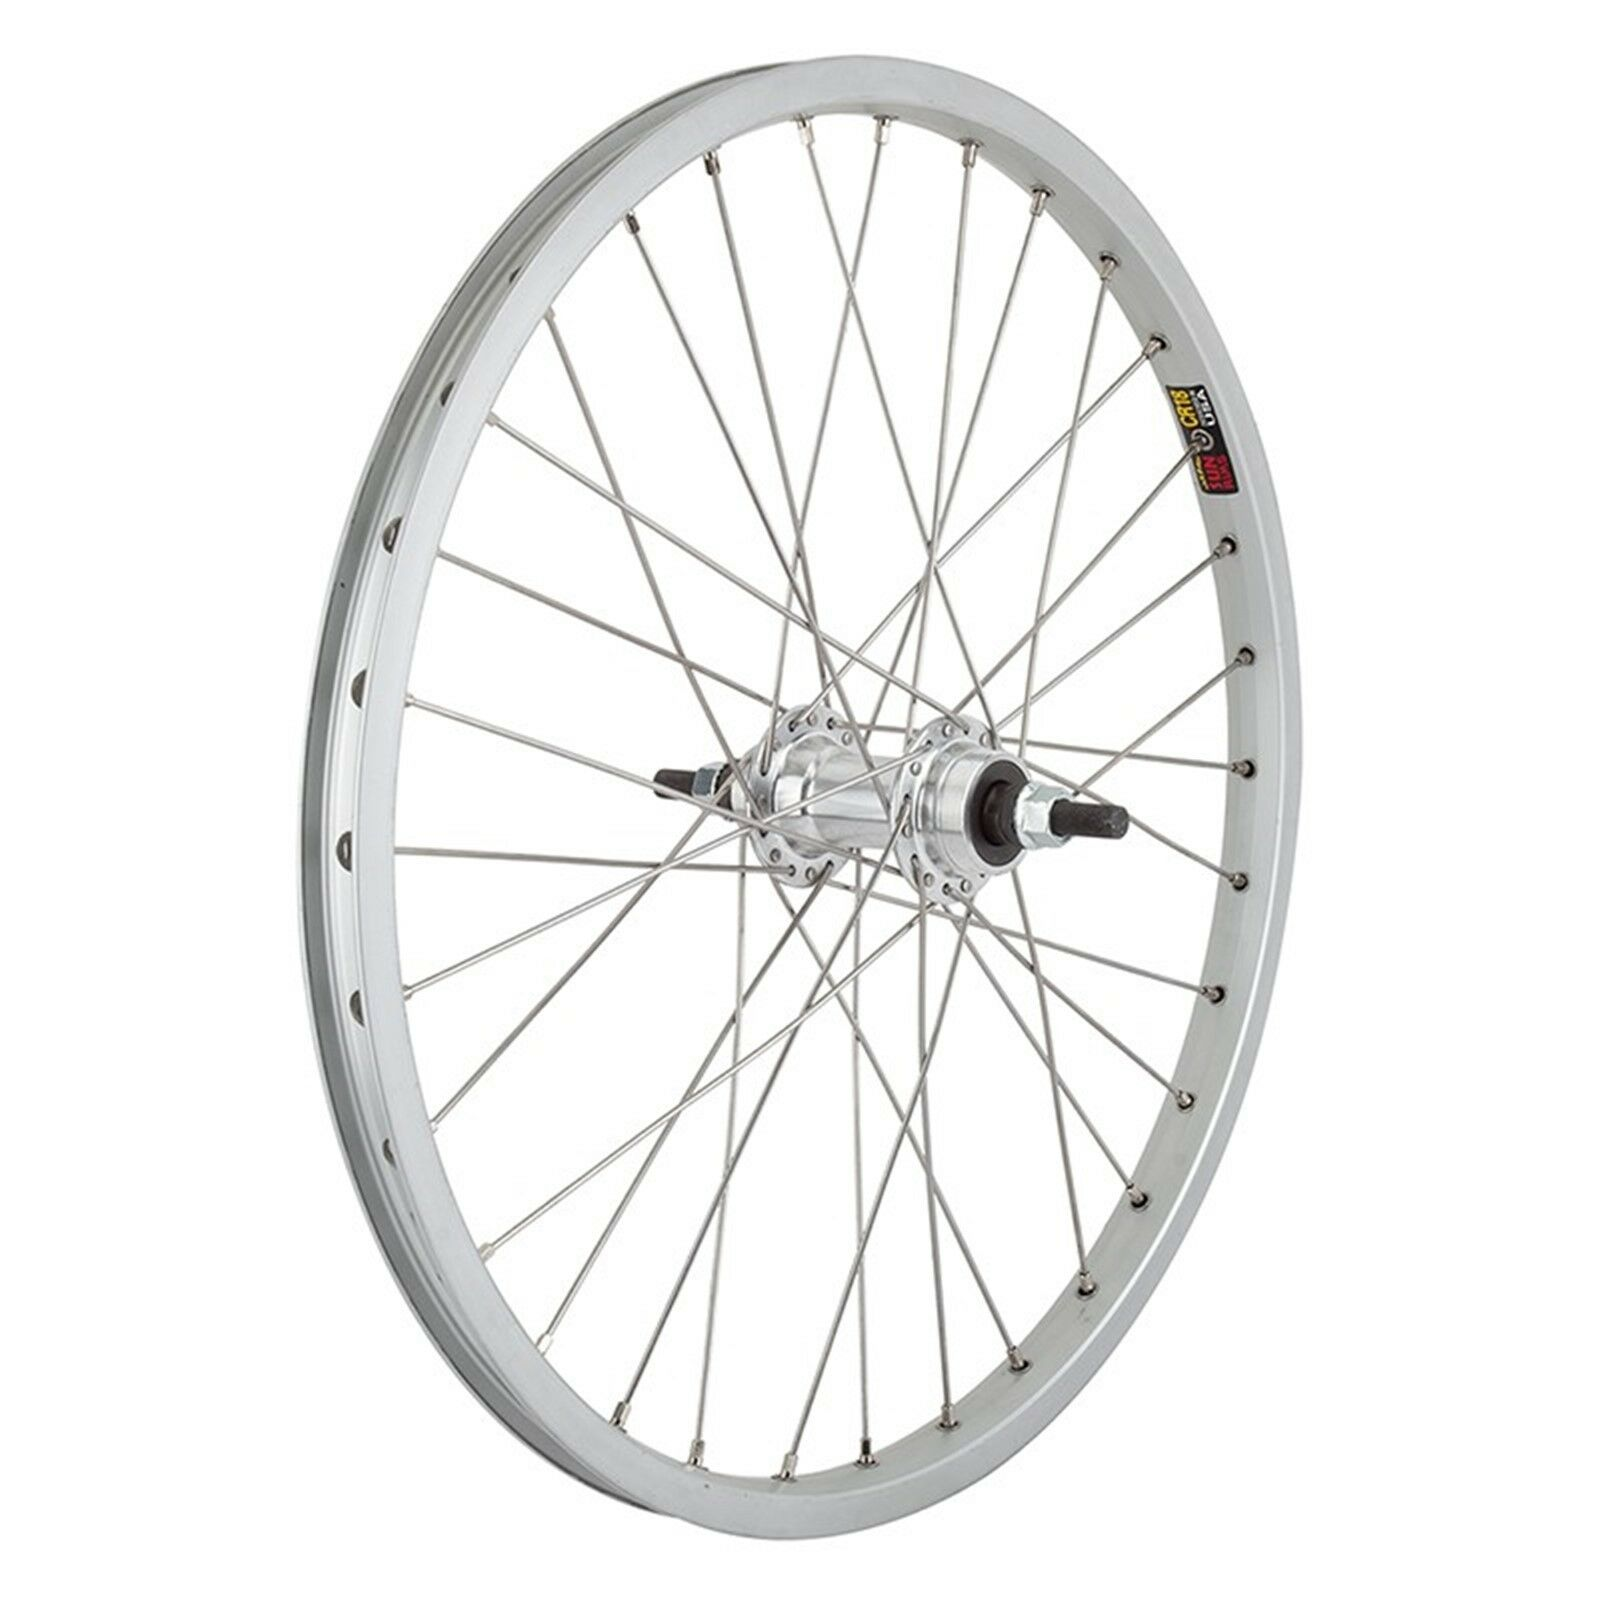 Wheel Master  20  Alloy Bmx Wheels  - 20In - Rr - 18 - B O 3 8 - Sil - Sun Cr18 -  80% off